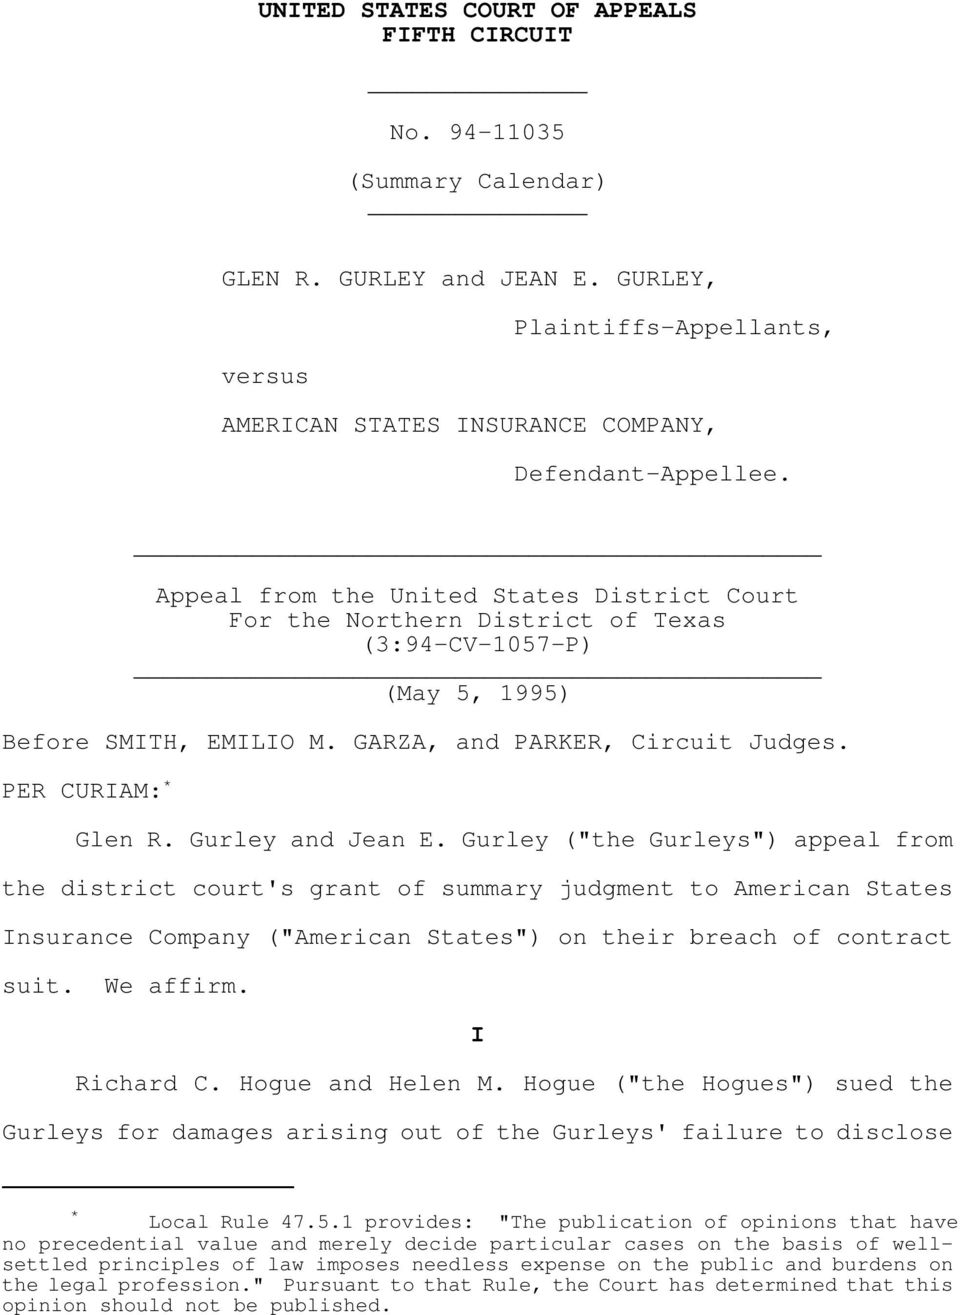 "Gurley and Jean E. Gurley (""the Gurleys"") appeal from the district court's grant of summary judgment to American States Insurance Company (""American States"") on their breach of contract suit."